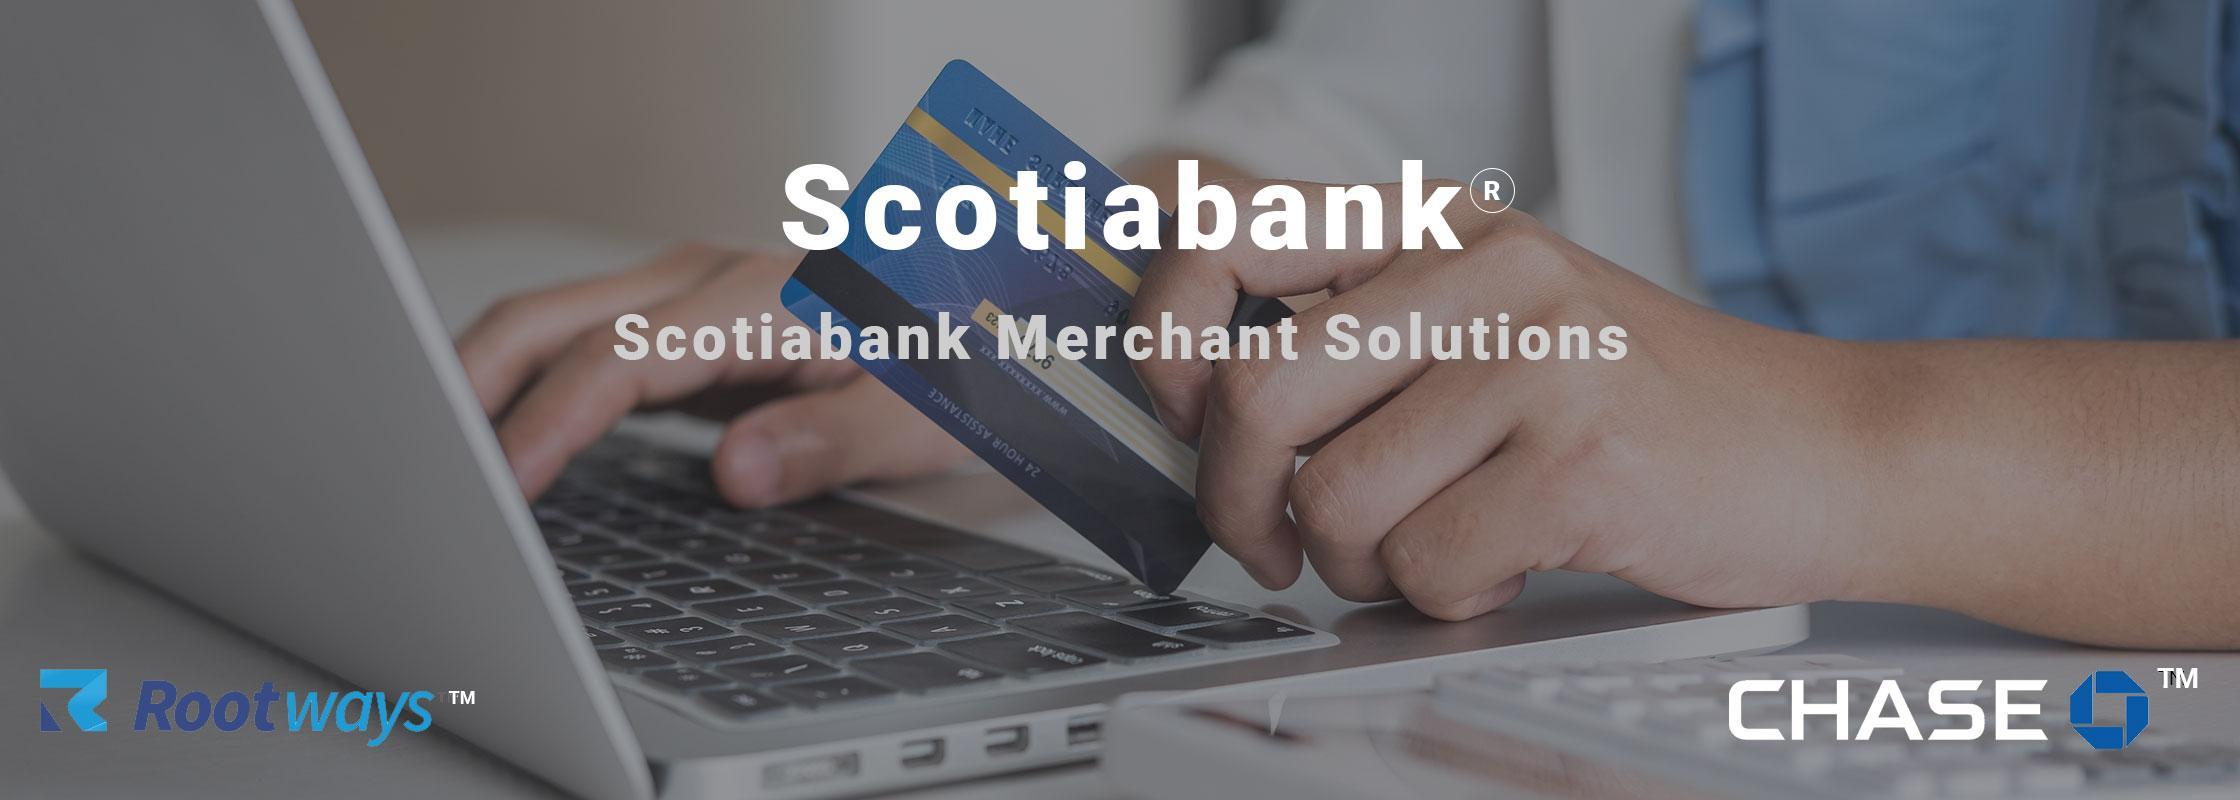 Scotiabank Credit Card Payment for eCommerce Website